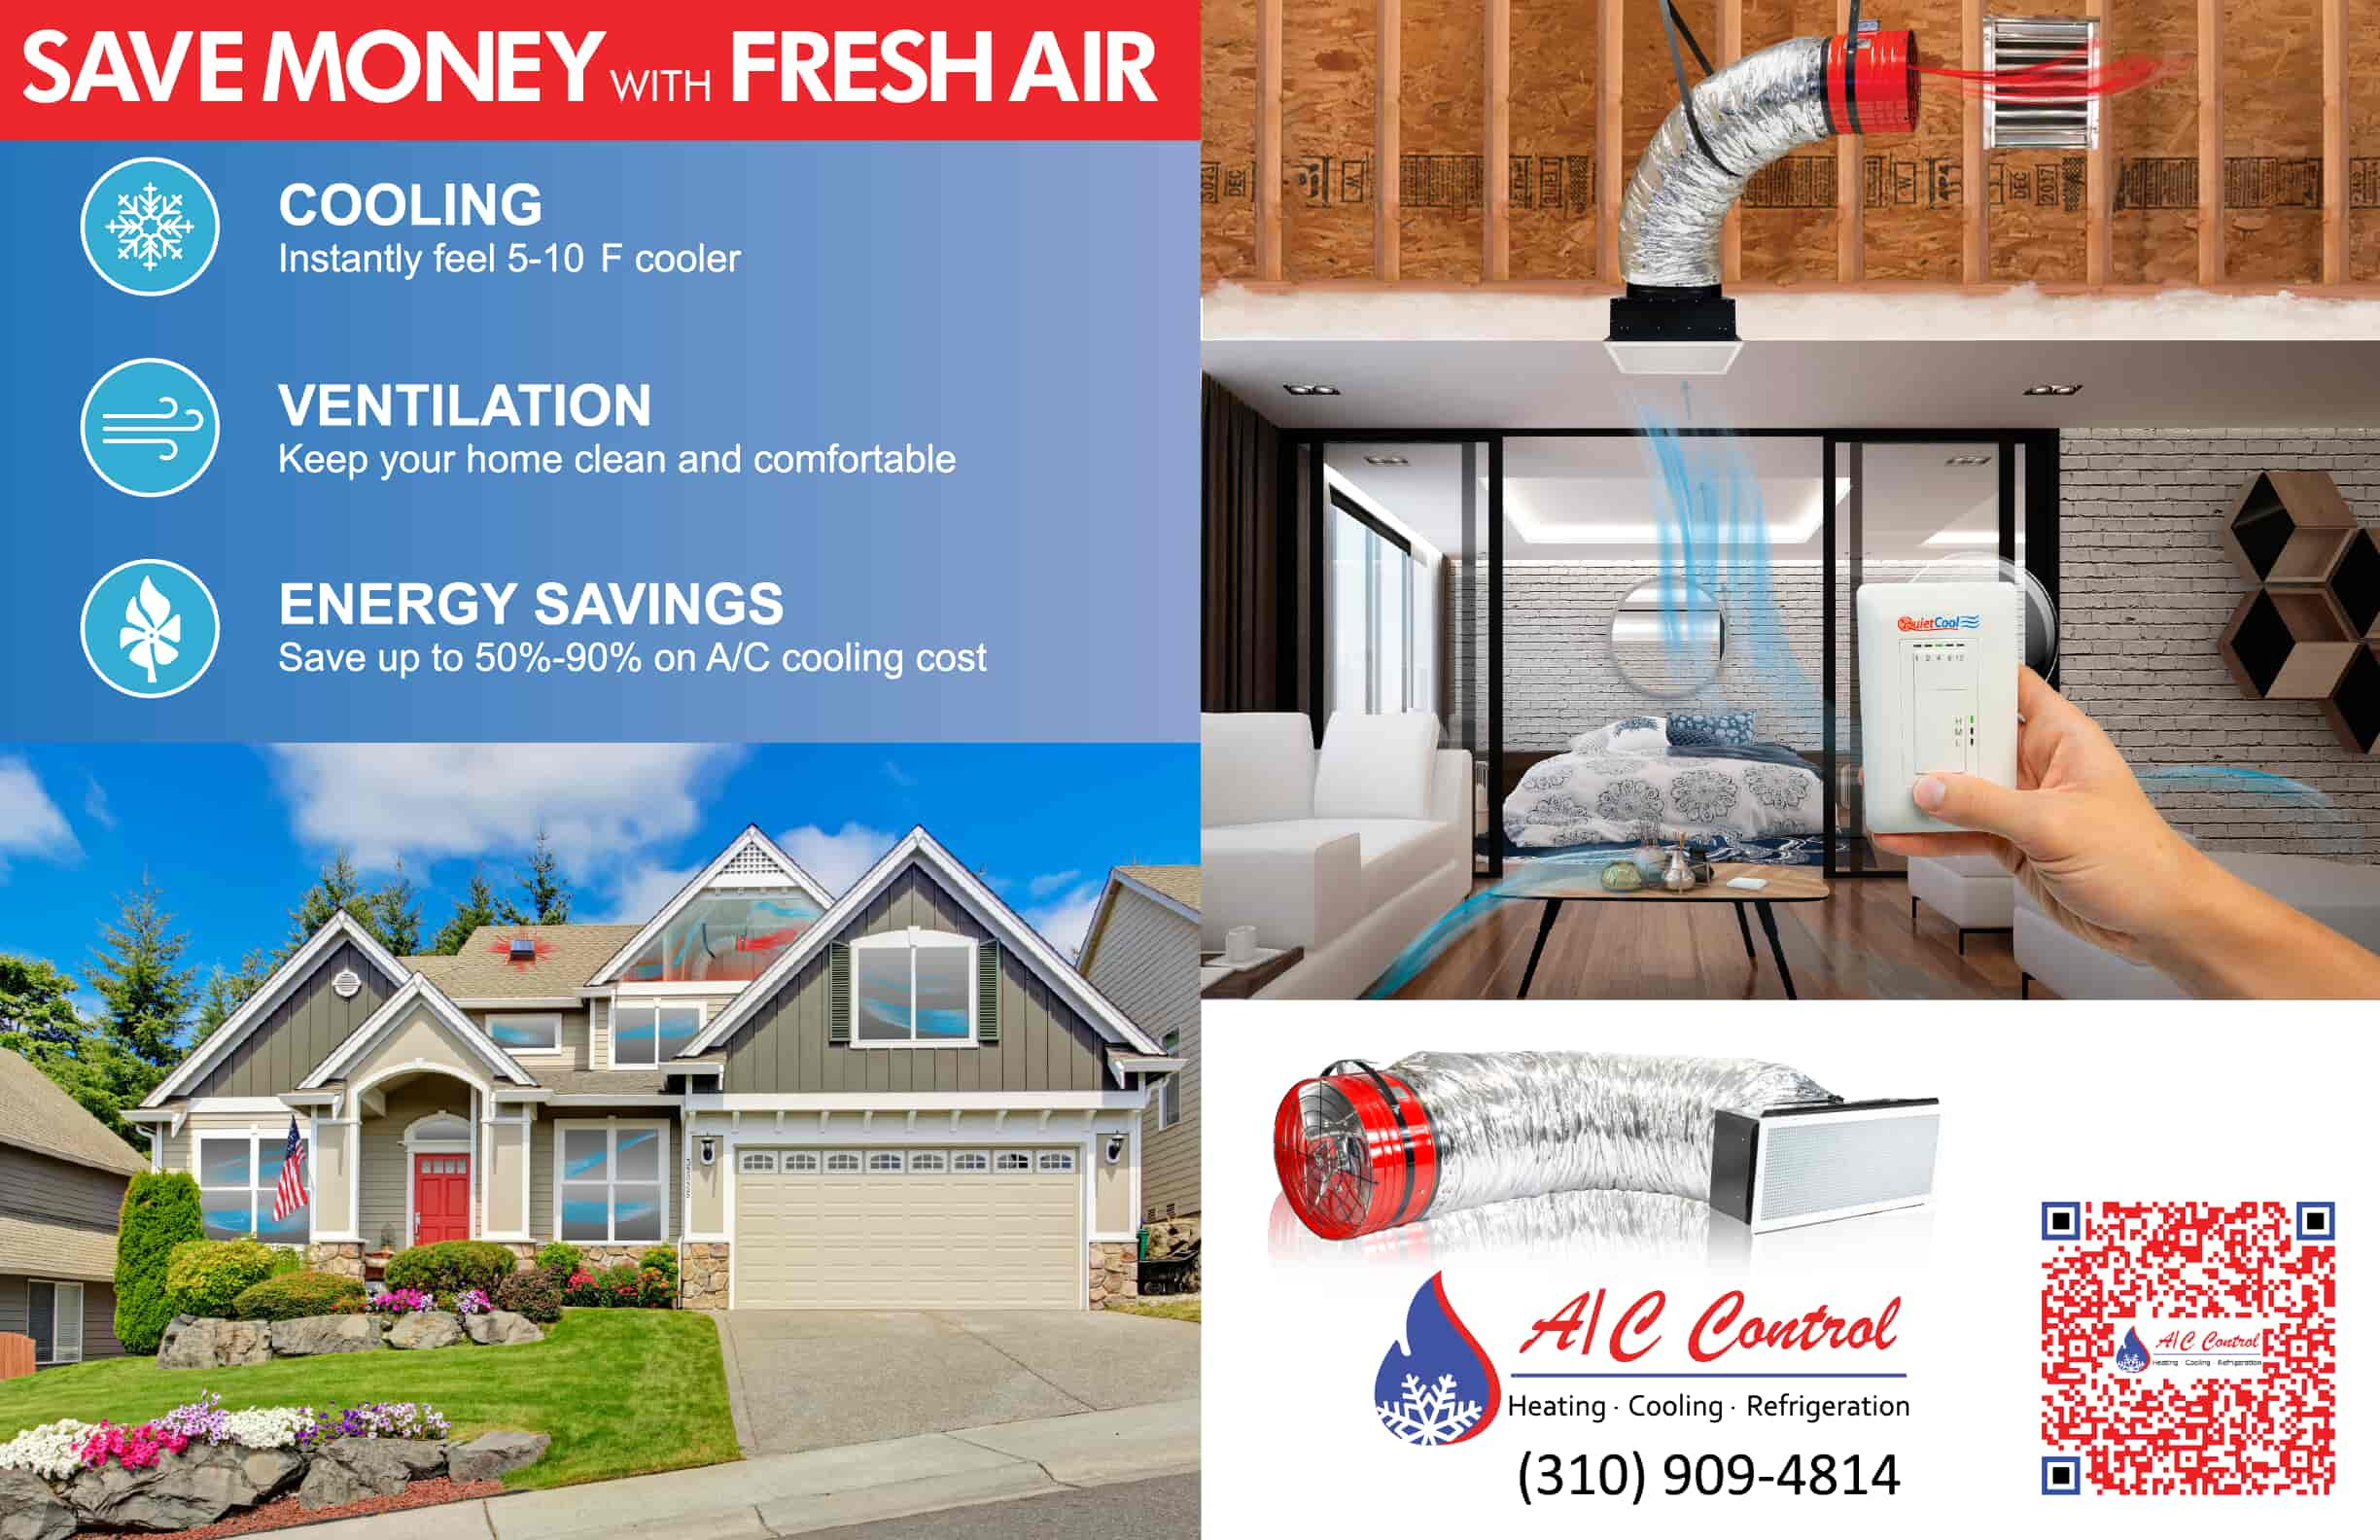 Save Money with Fresh Air Flyer